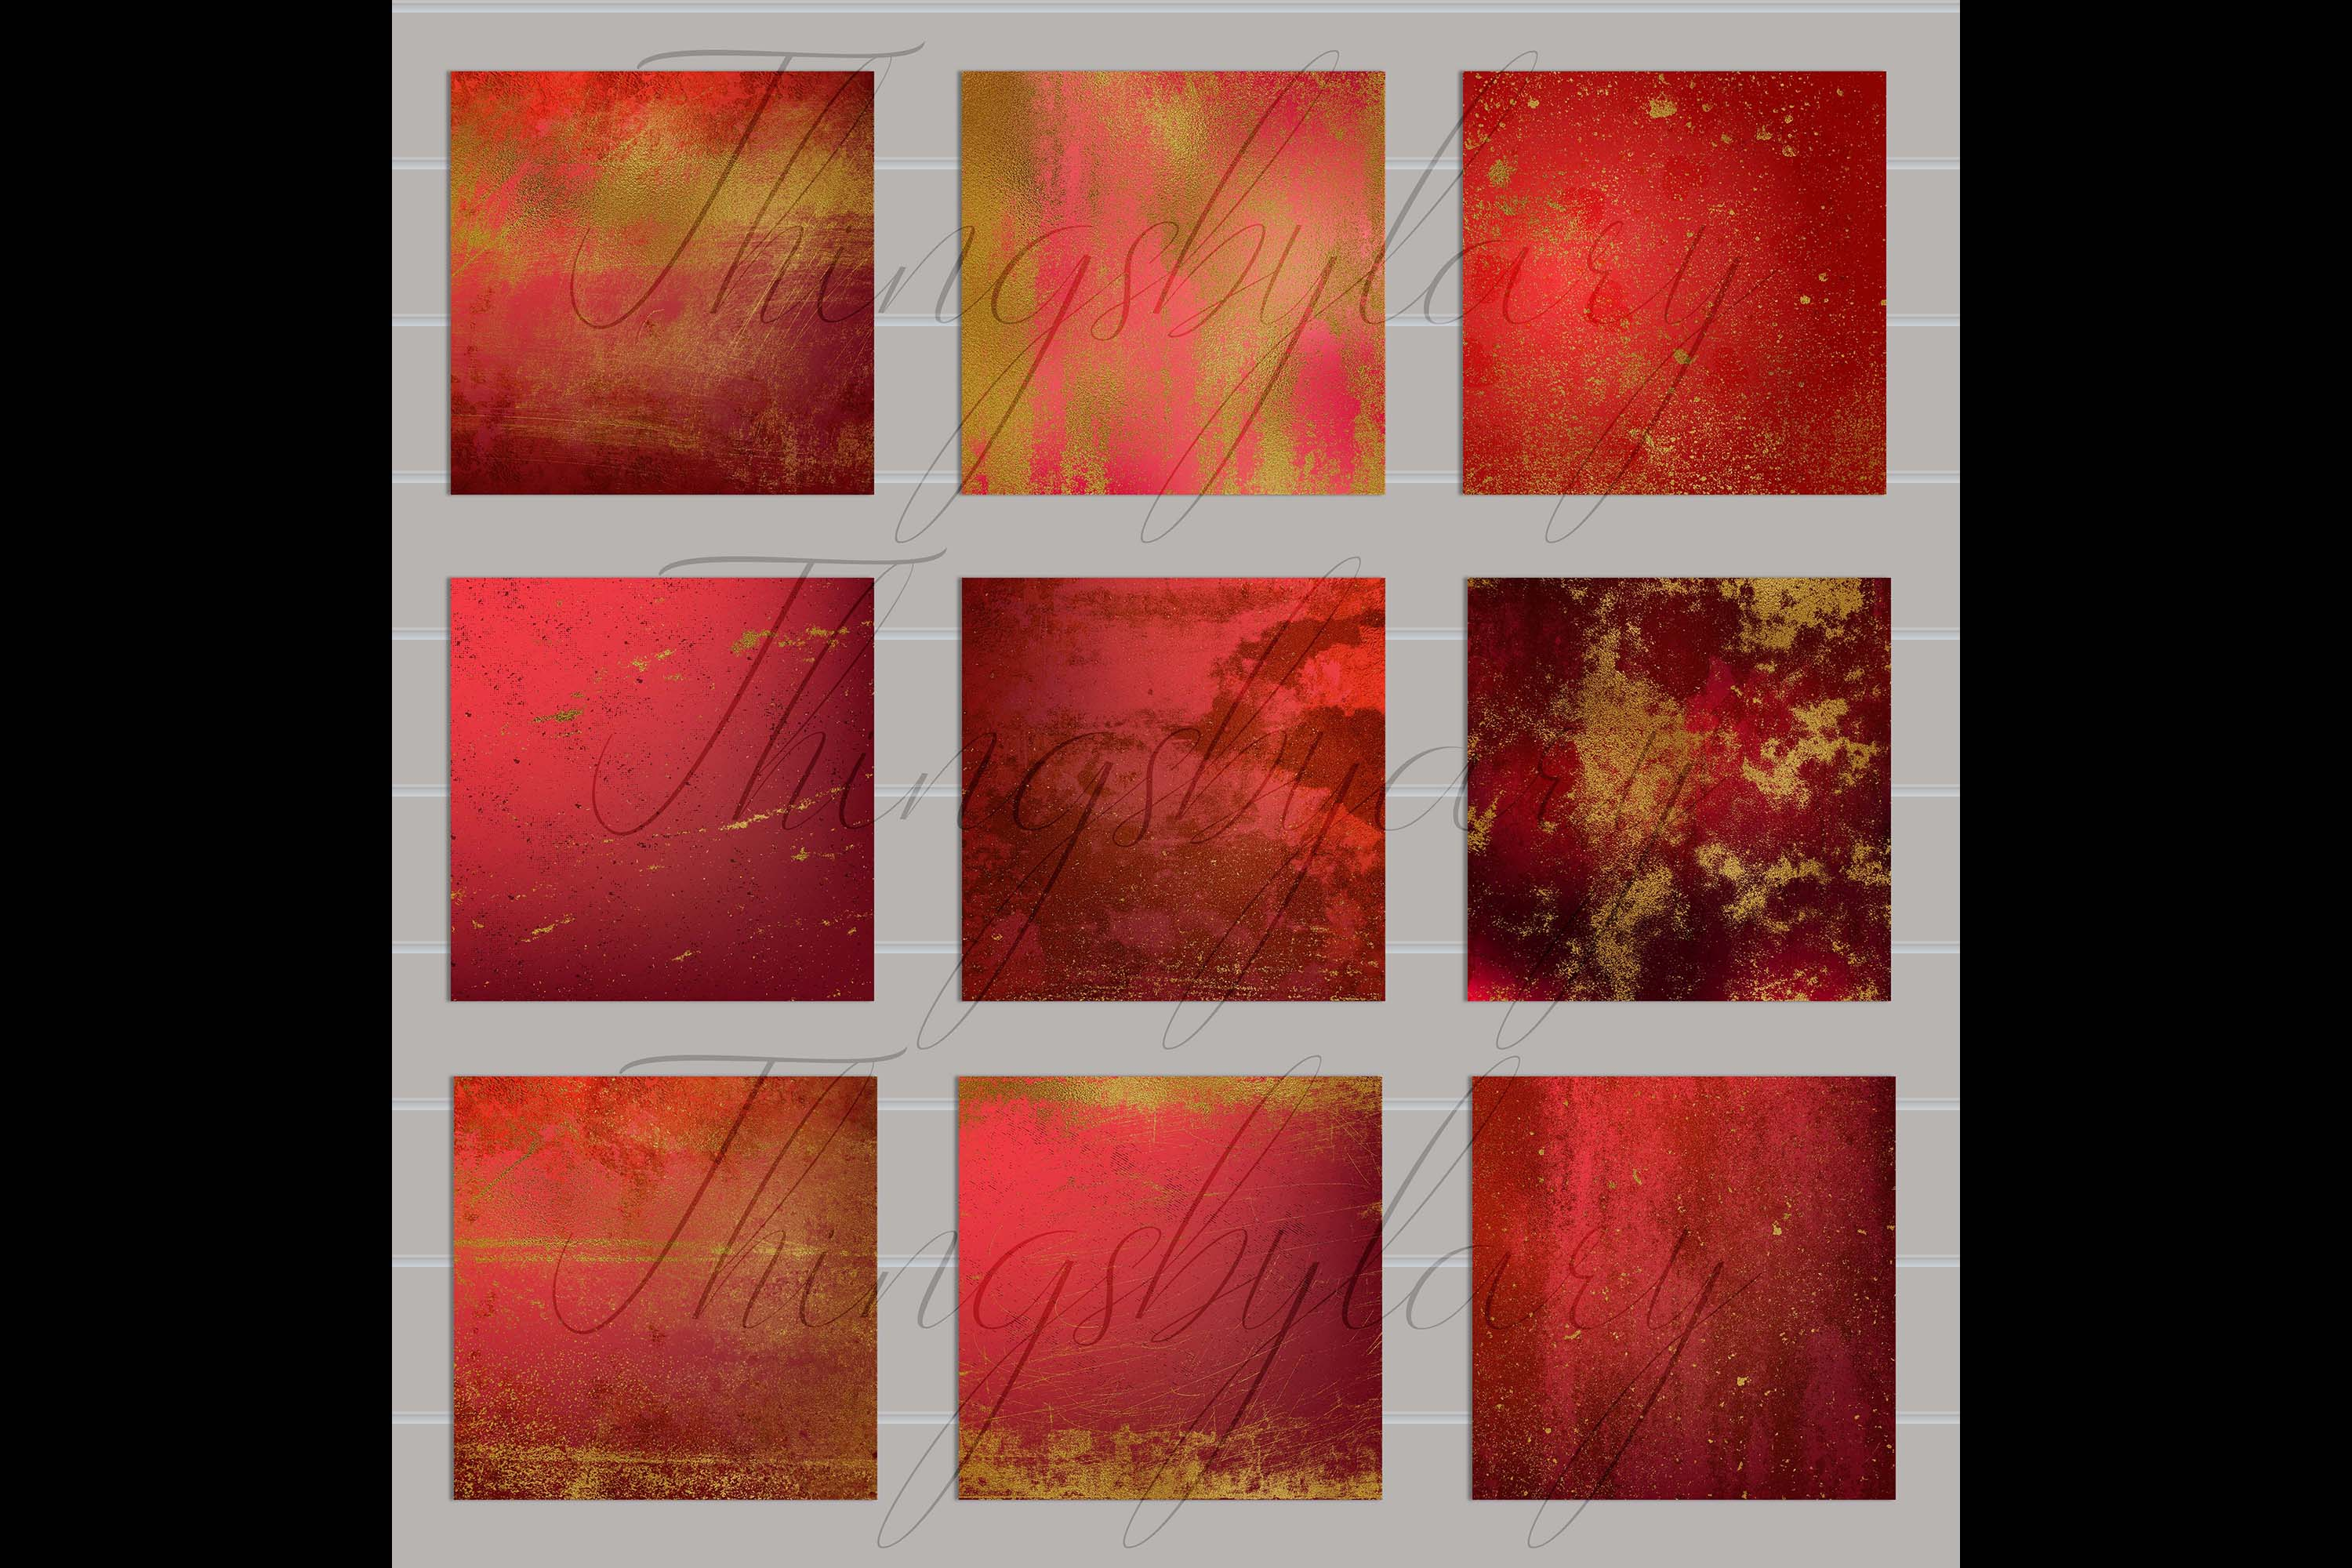 16 Distressed Red and Gold Artistic Painted Digital Papers example image 9